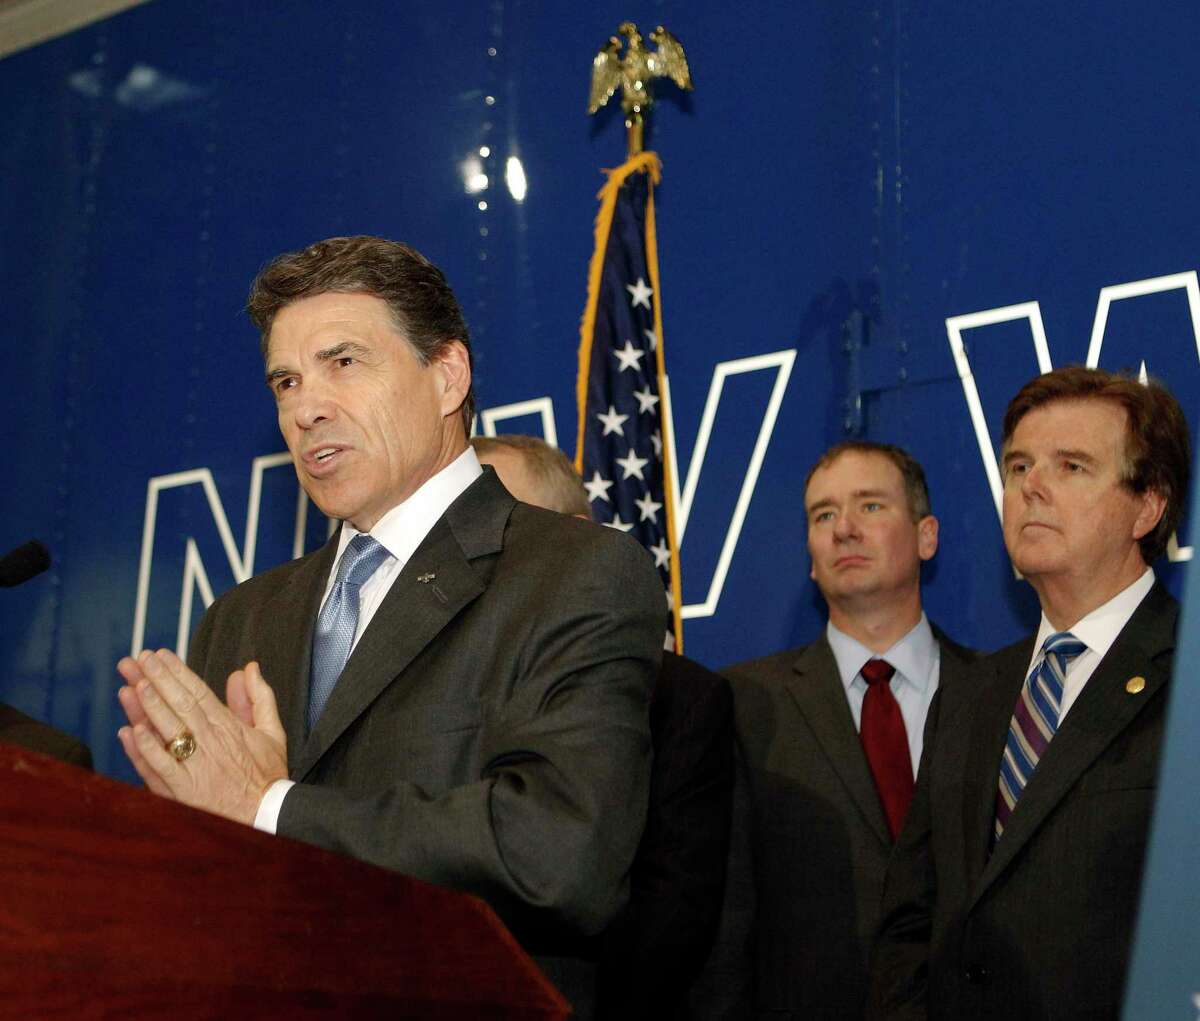 Texas Governor Rick Perry left, as he announces the Texas Budget Compact, composed of five key principles during a press conference as Empower Texans President and CEO Michael Quinn Sullivan center, and Texas State Senator Dan Patrick look on at New World Van Lines Monday, April 16, 2012, in Houston.